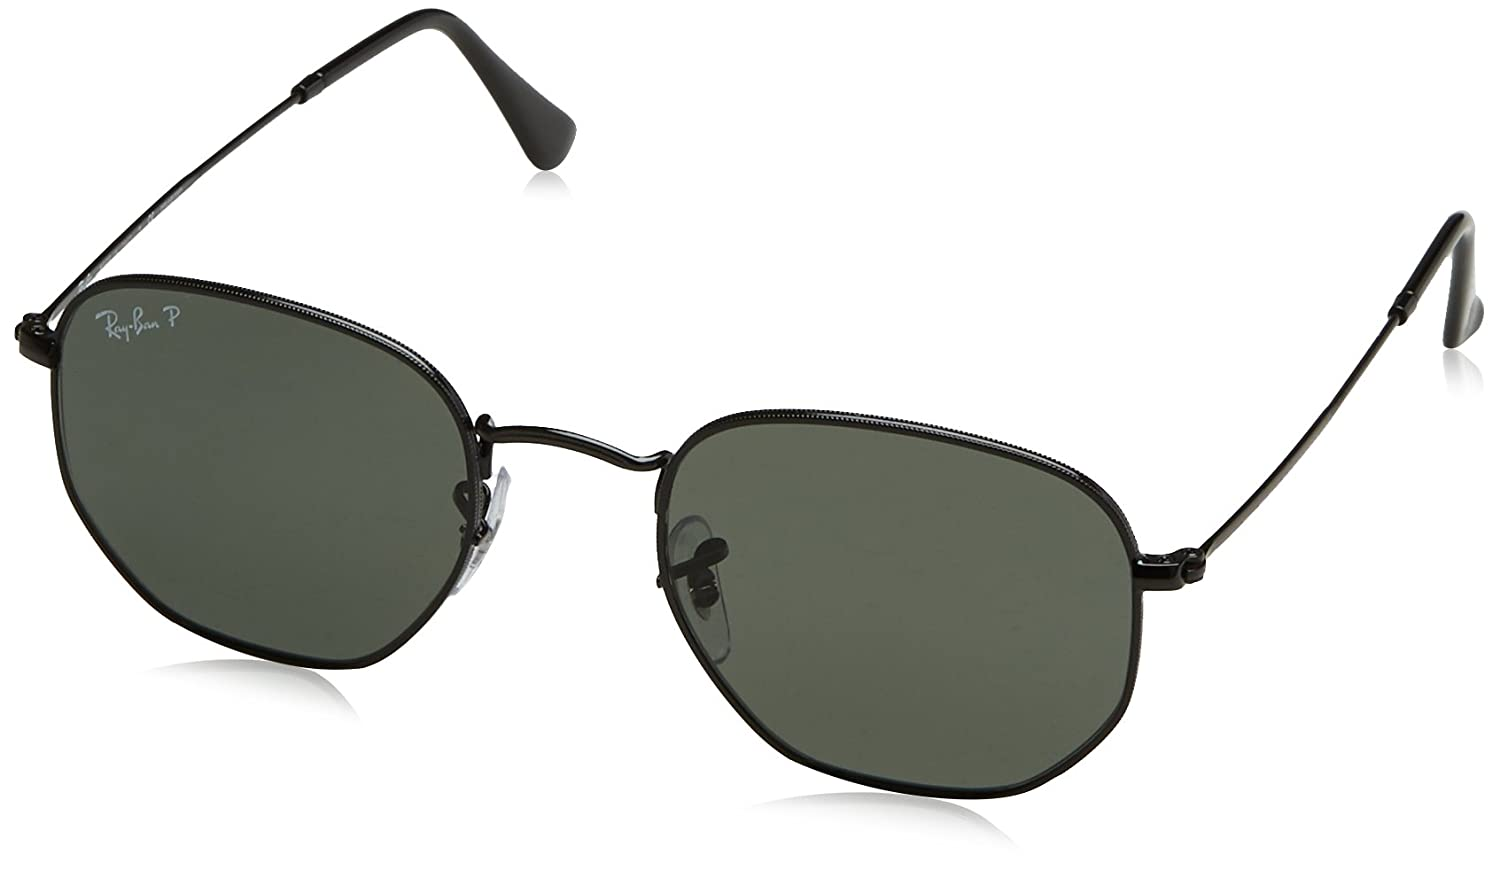 Amazon.com  Ray-Ban Men s Hexagonal Polarized Square Sunglasses BLACK 51  mm  Clothing 9c23c0883c